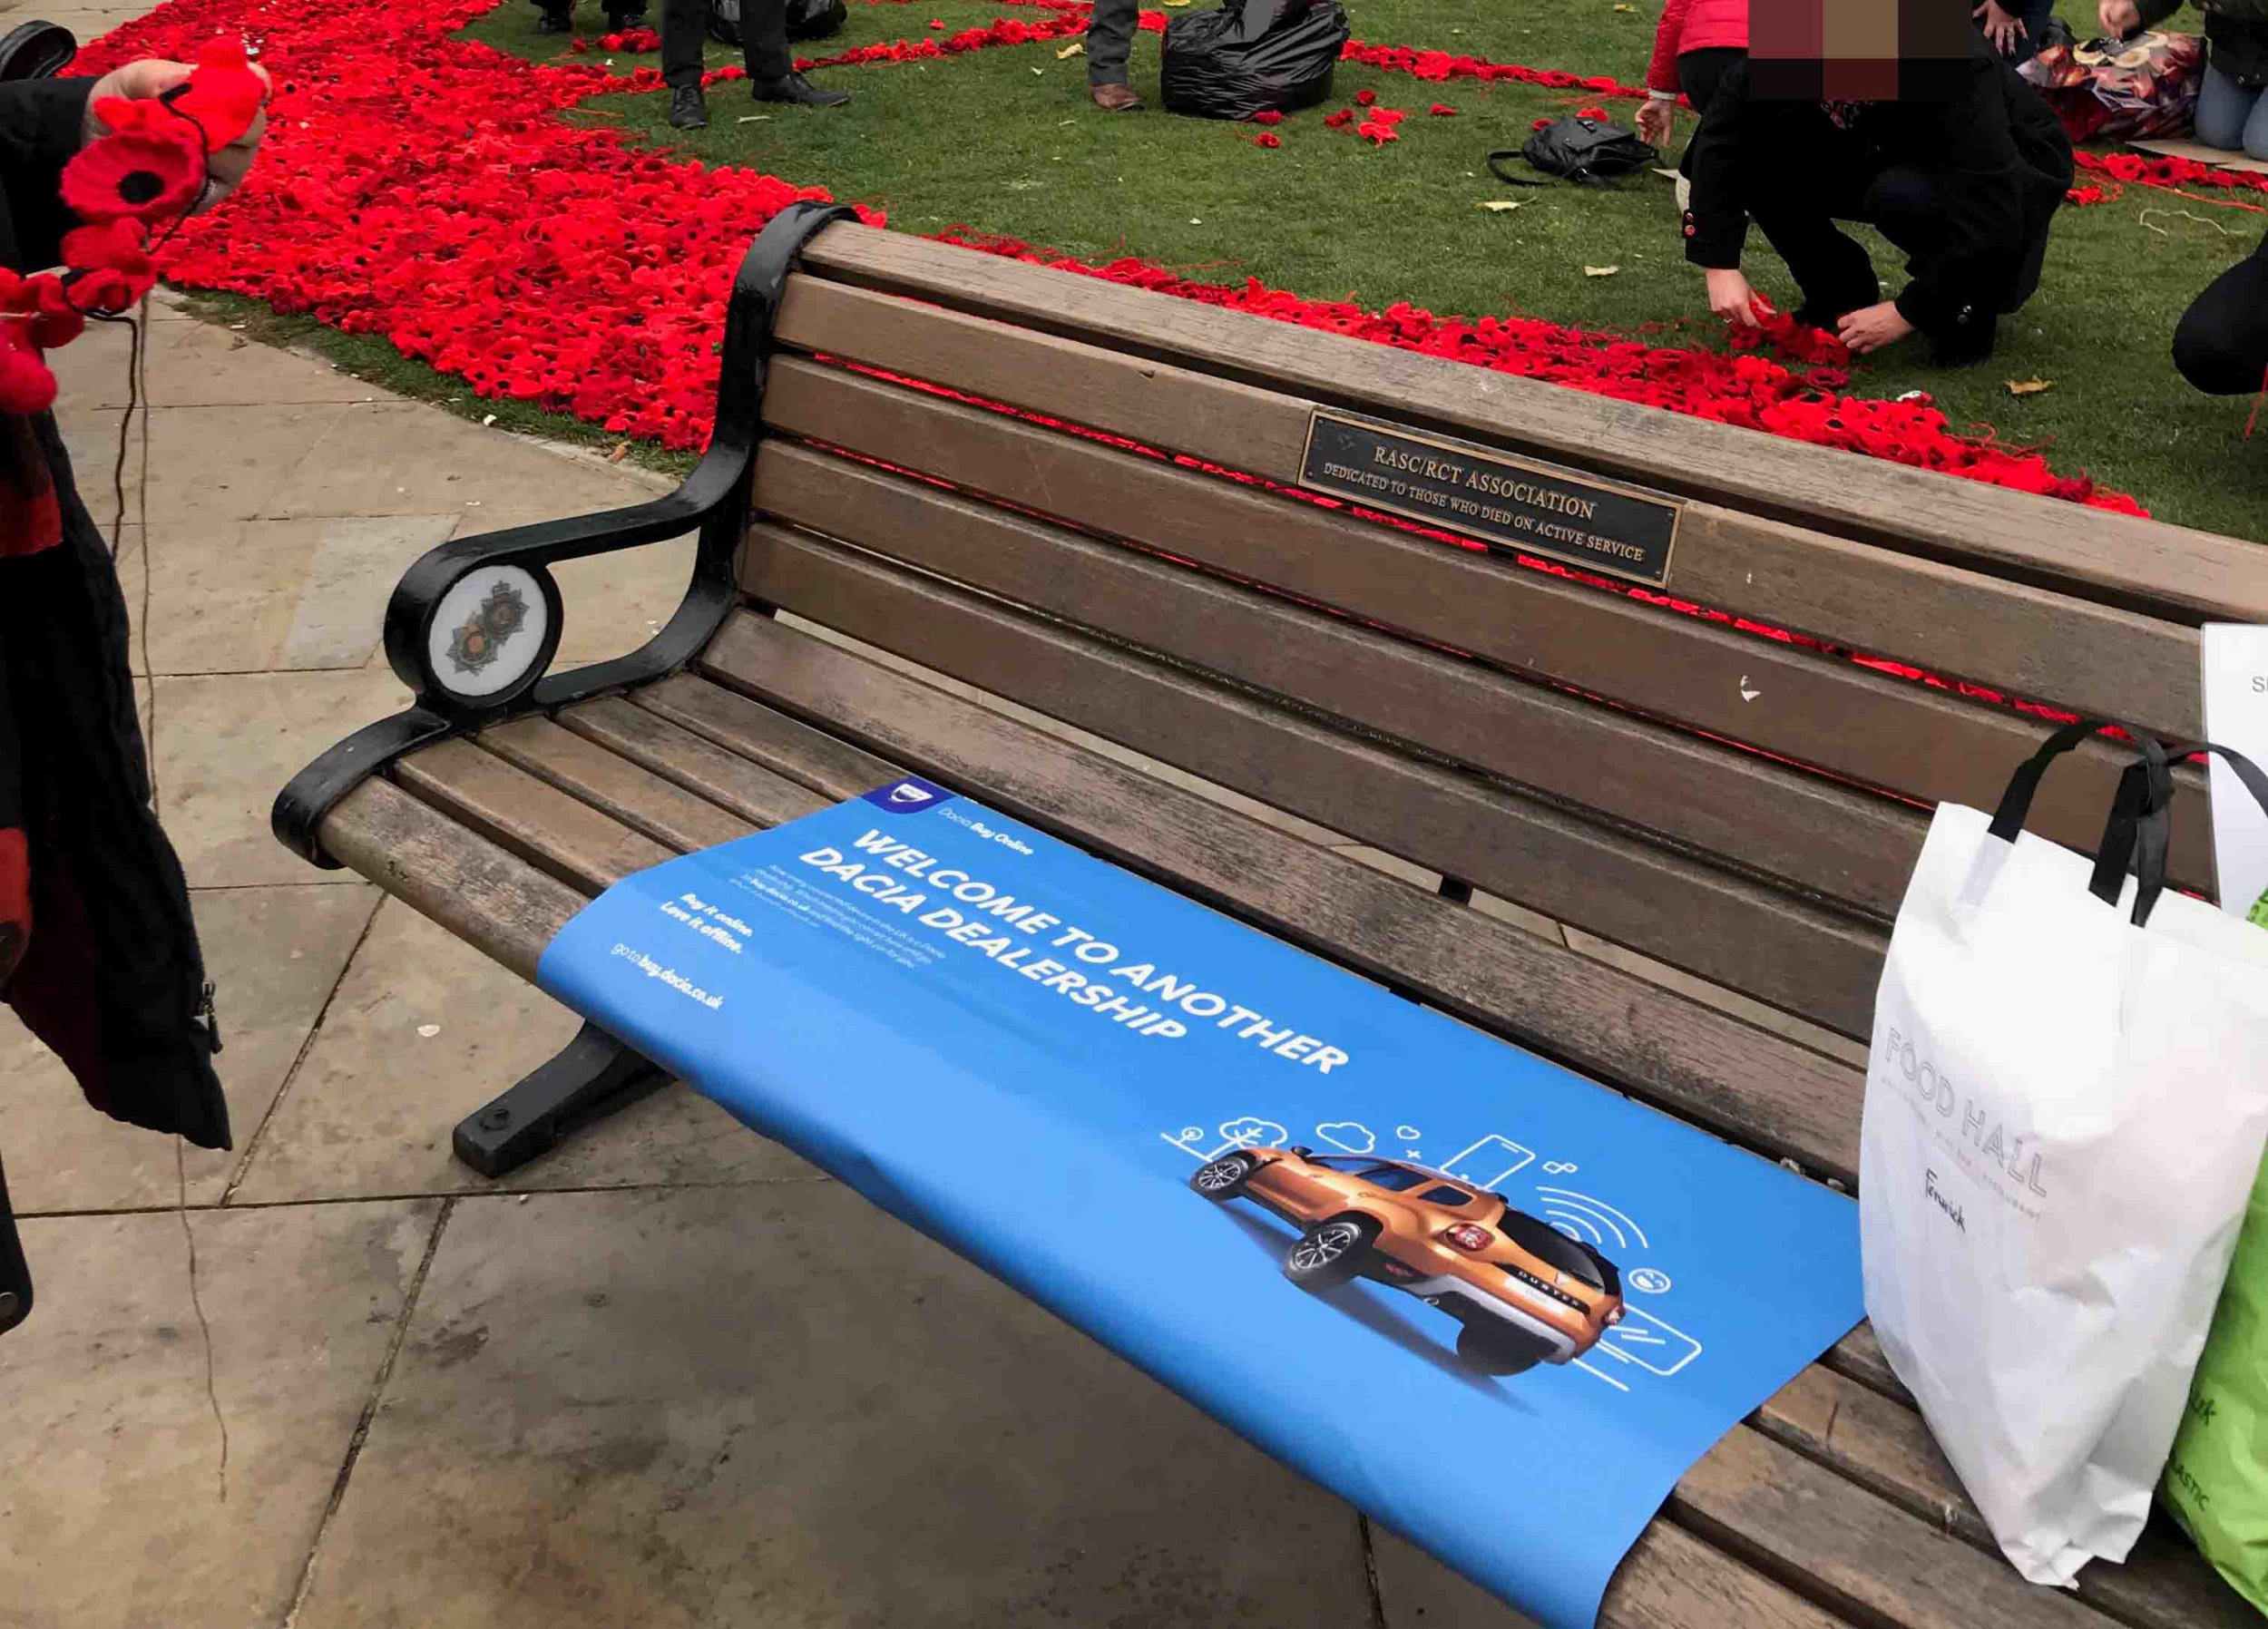 The marketing agency was fined for the blue adverts placed next to a war memorial just days before the 100th anniversary of the end of World War II (Picture: ncjMedia Ltd)